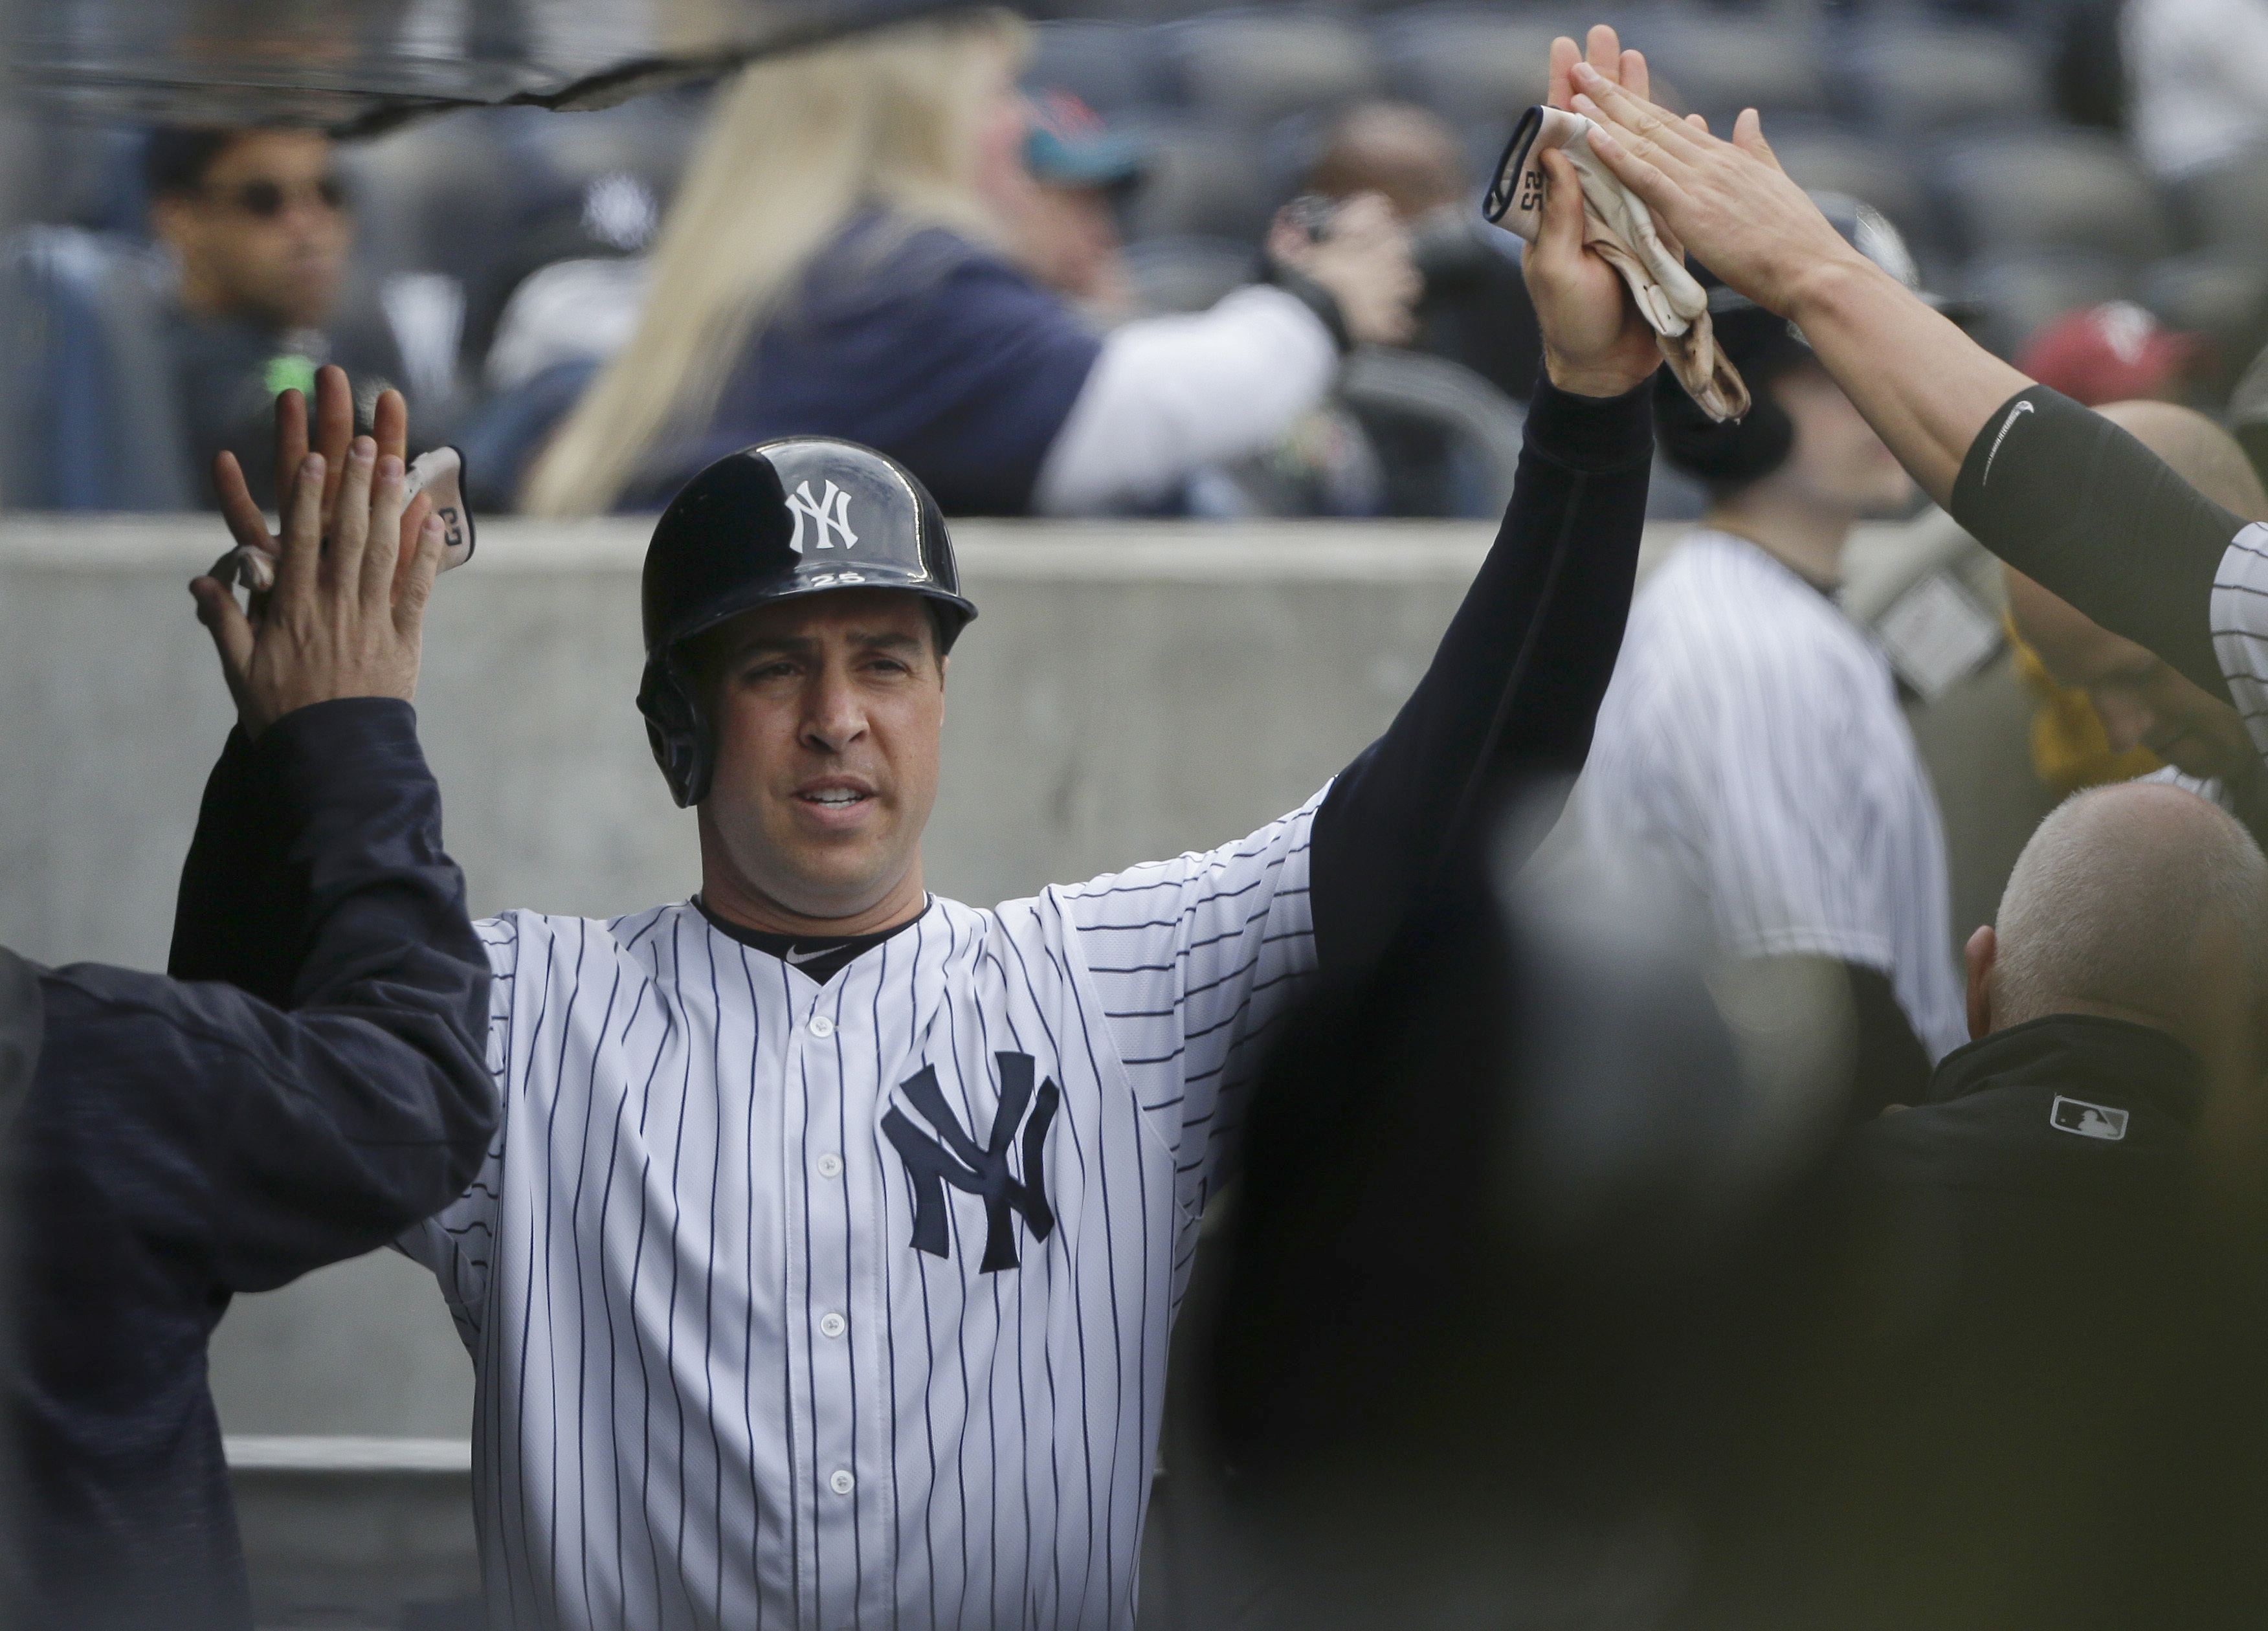 New York Yankees Mark Teixeira is greeted in the dugout after scoring against the Houston Astros during the second inning of a baseball game, Thursday, April 7, 2016, in New York. (AP Photo/Julie Jacobson)